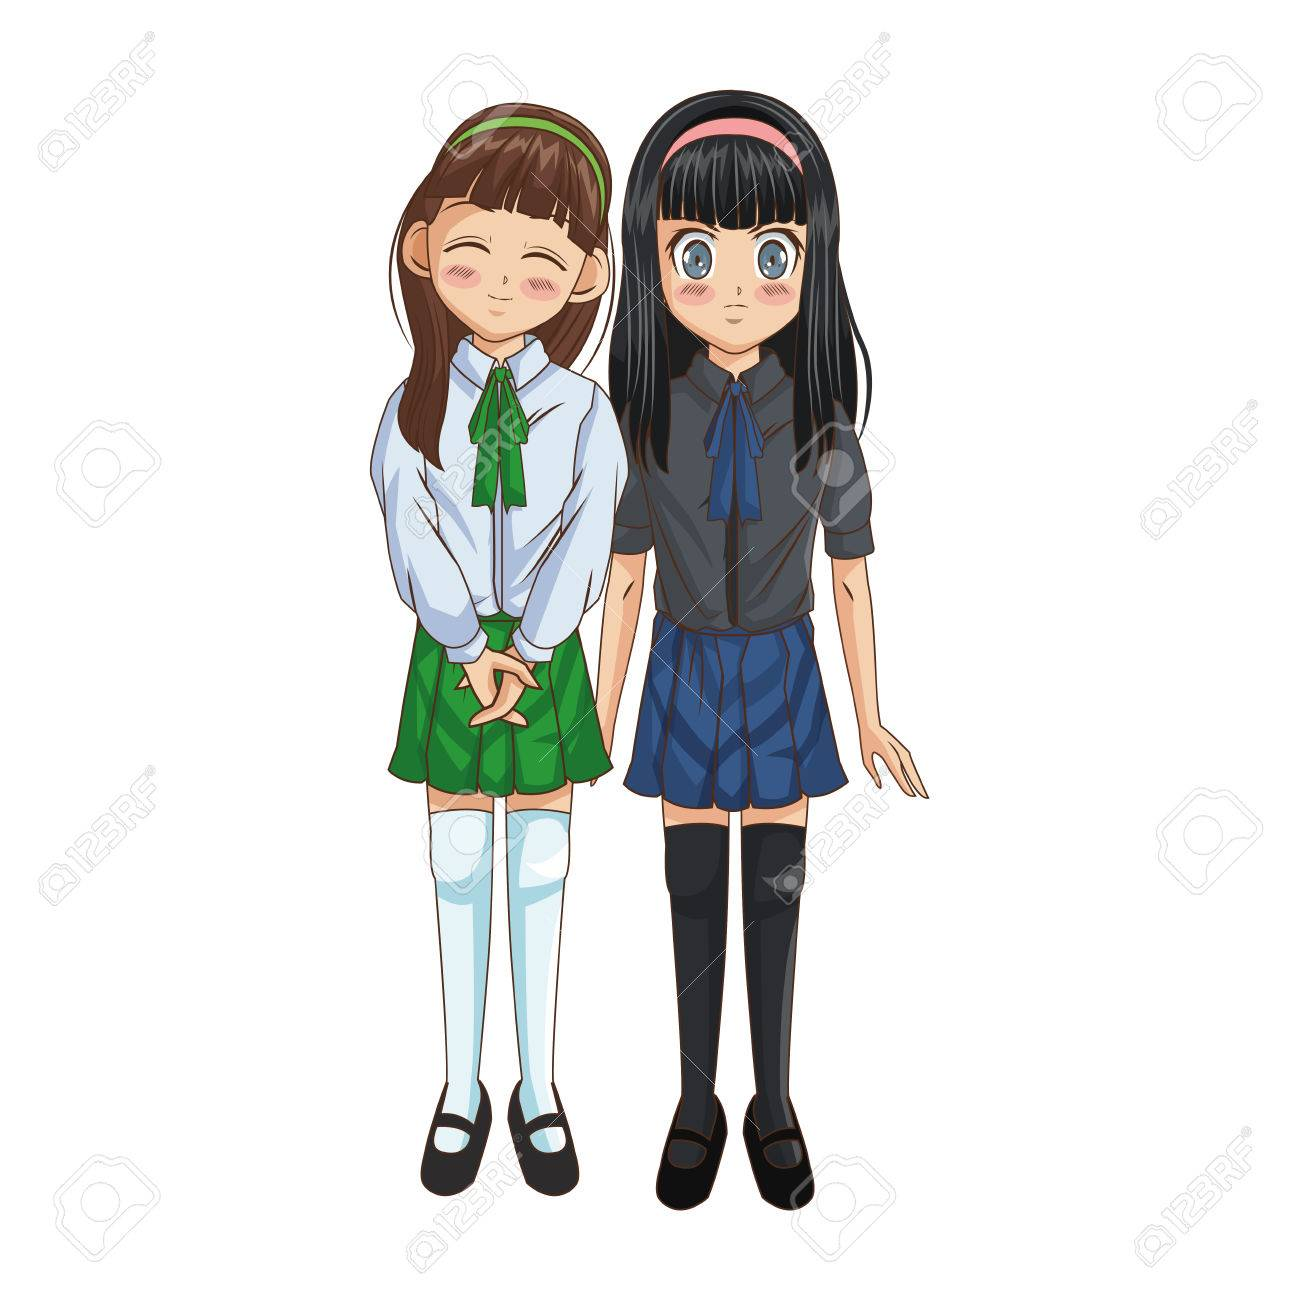 anime girls wearing school uniform, icon over white background